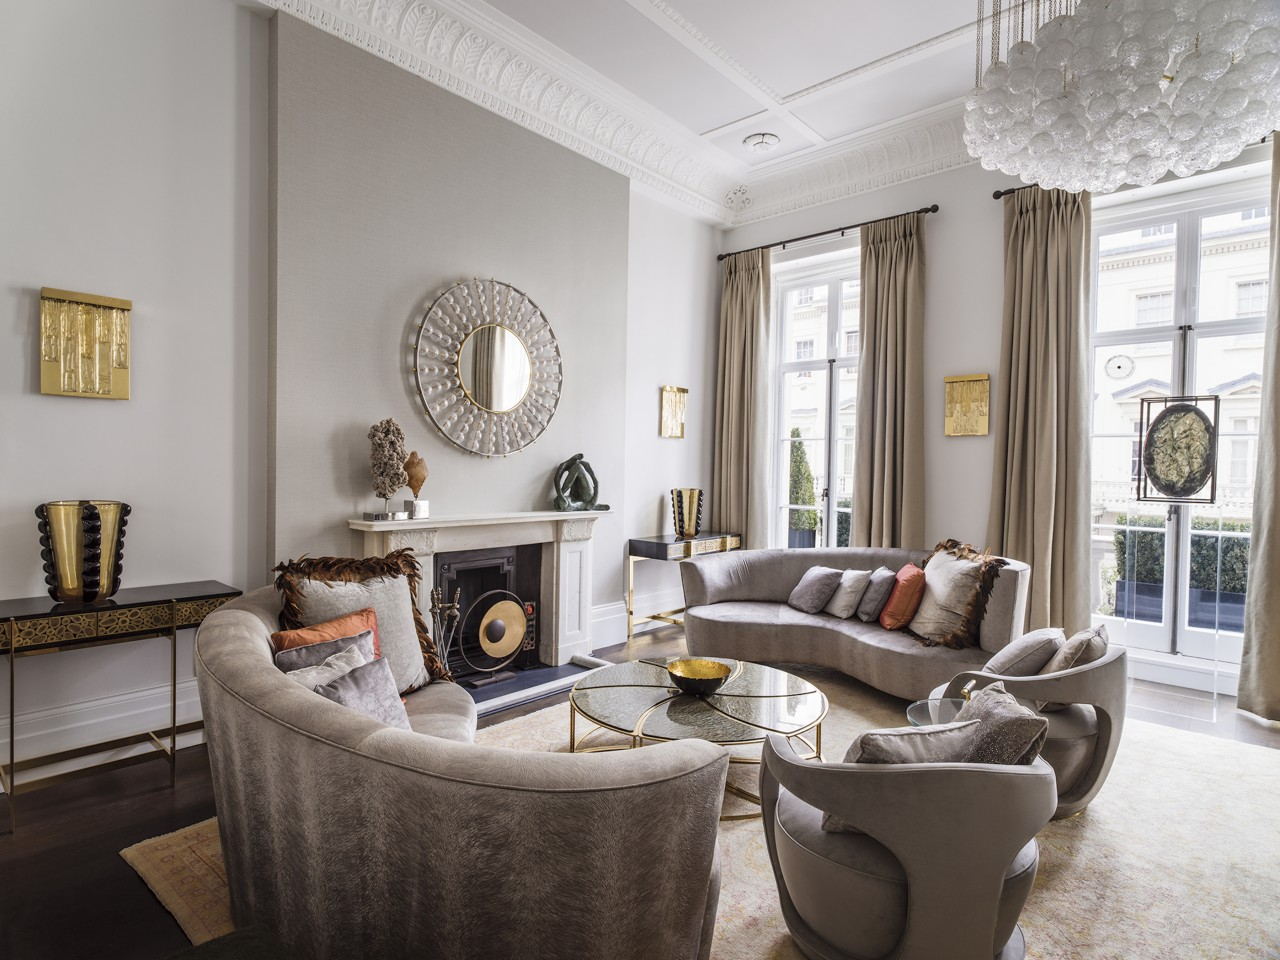 Eaton Place, a project by Shalini Misra -